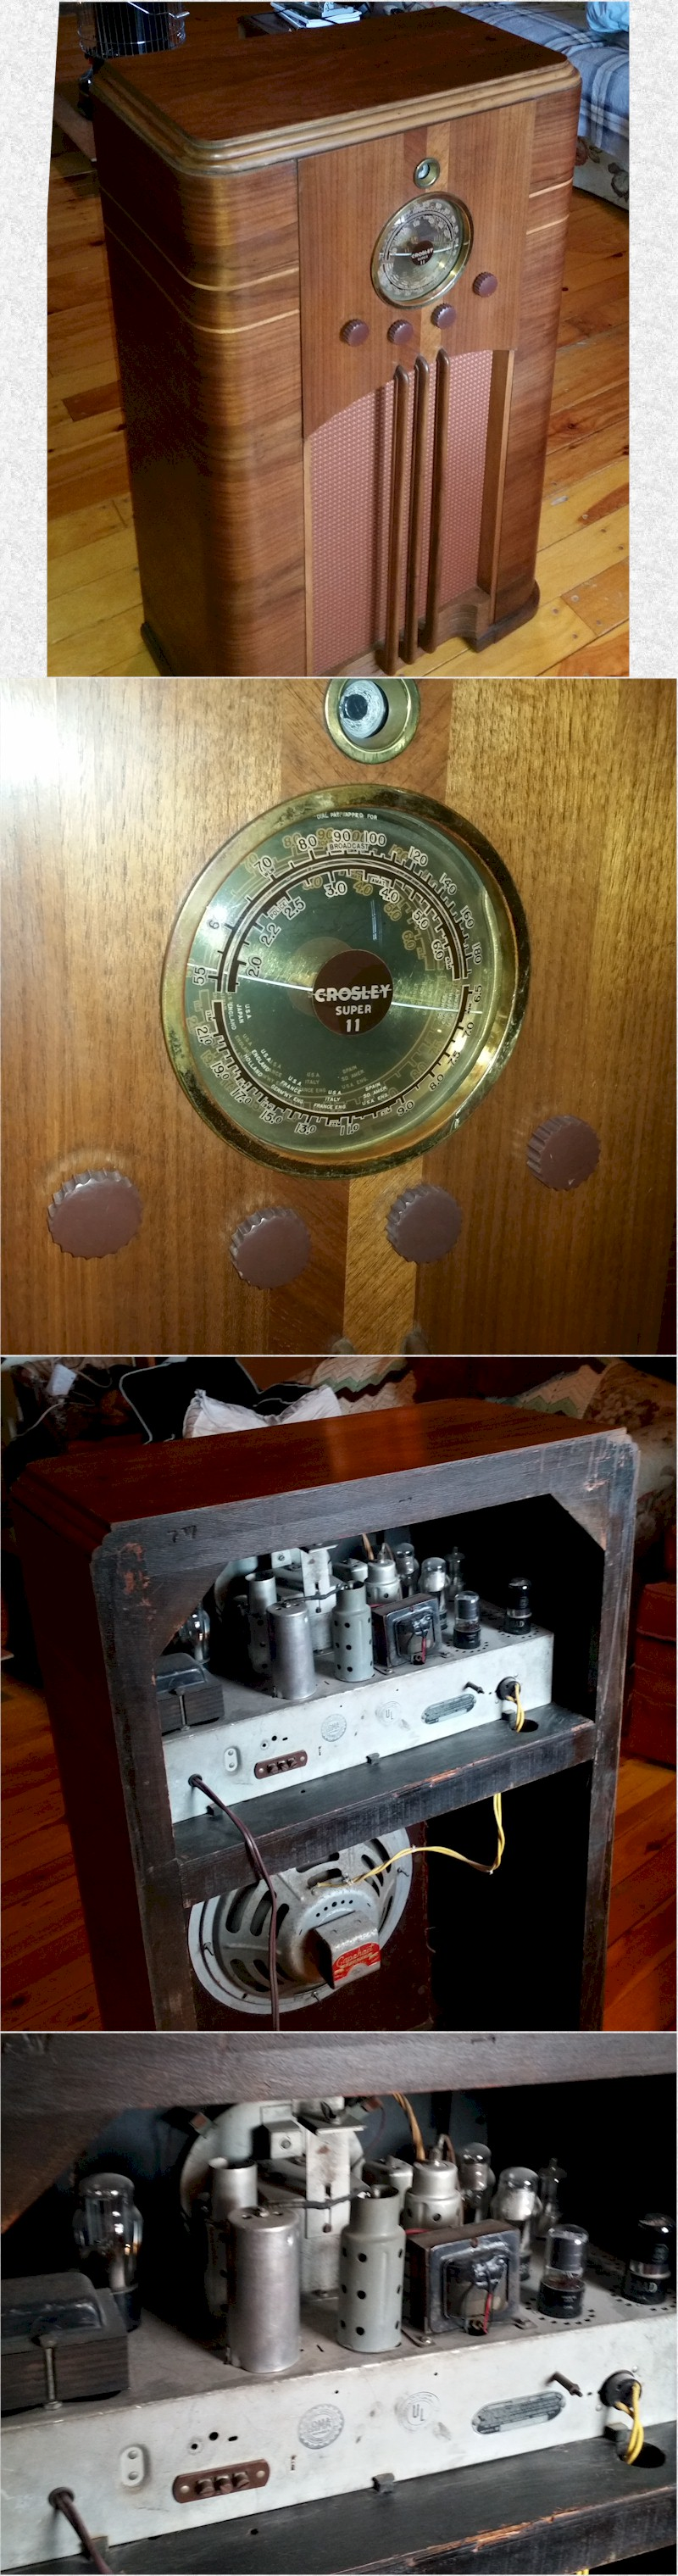 Crosley 1117 Super 11